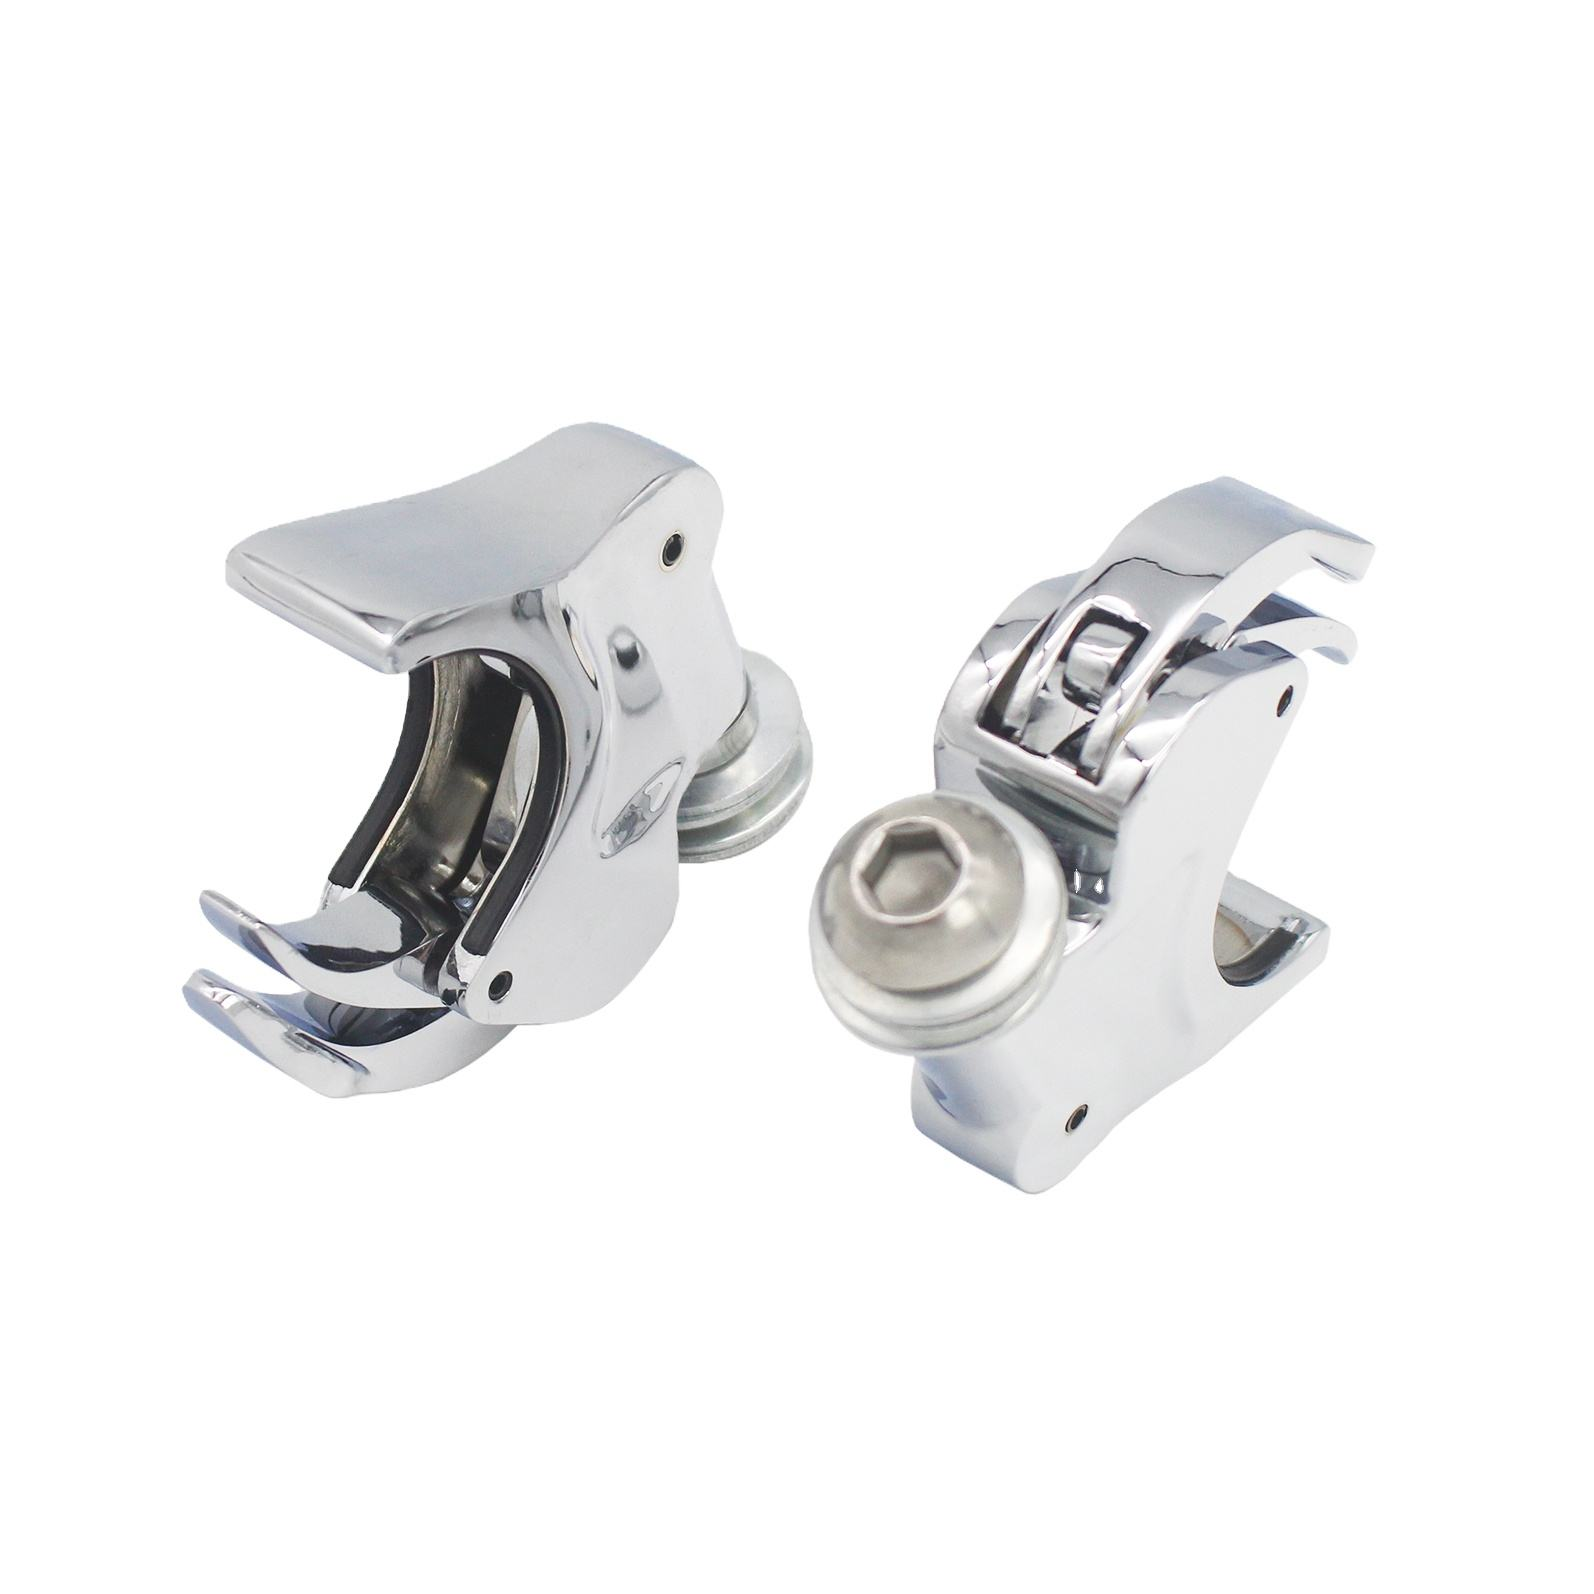 Sepeda Motor Chrome Zinc Alloy Bahan Kaca Depan Clamp Cocok 93-'05 FXDWG dan '88-'13 <span class=keywords><strong>FXS</strong></span>, FXST, FXSTB dan FXSTC Model